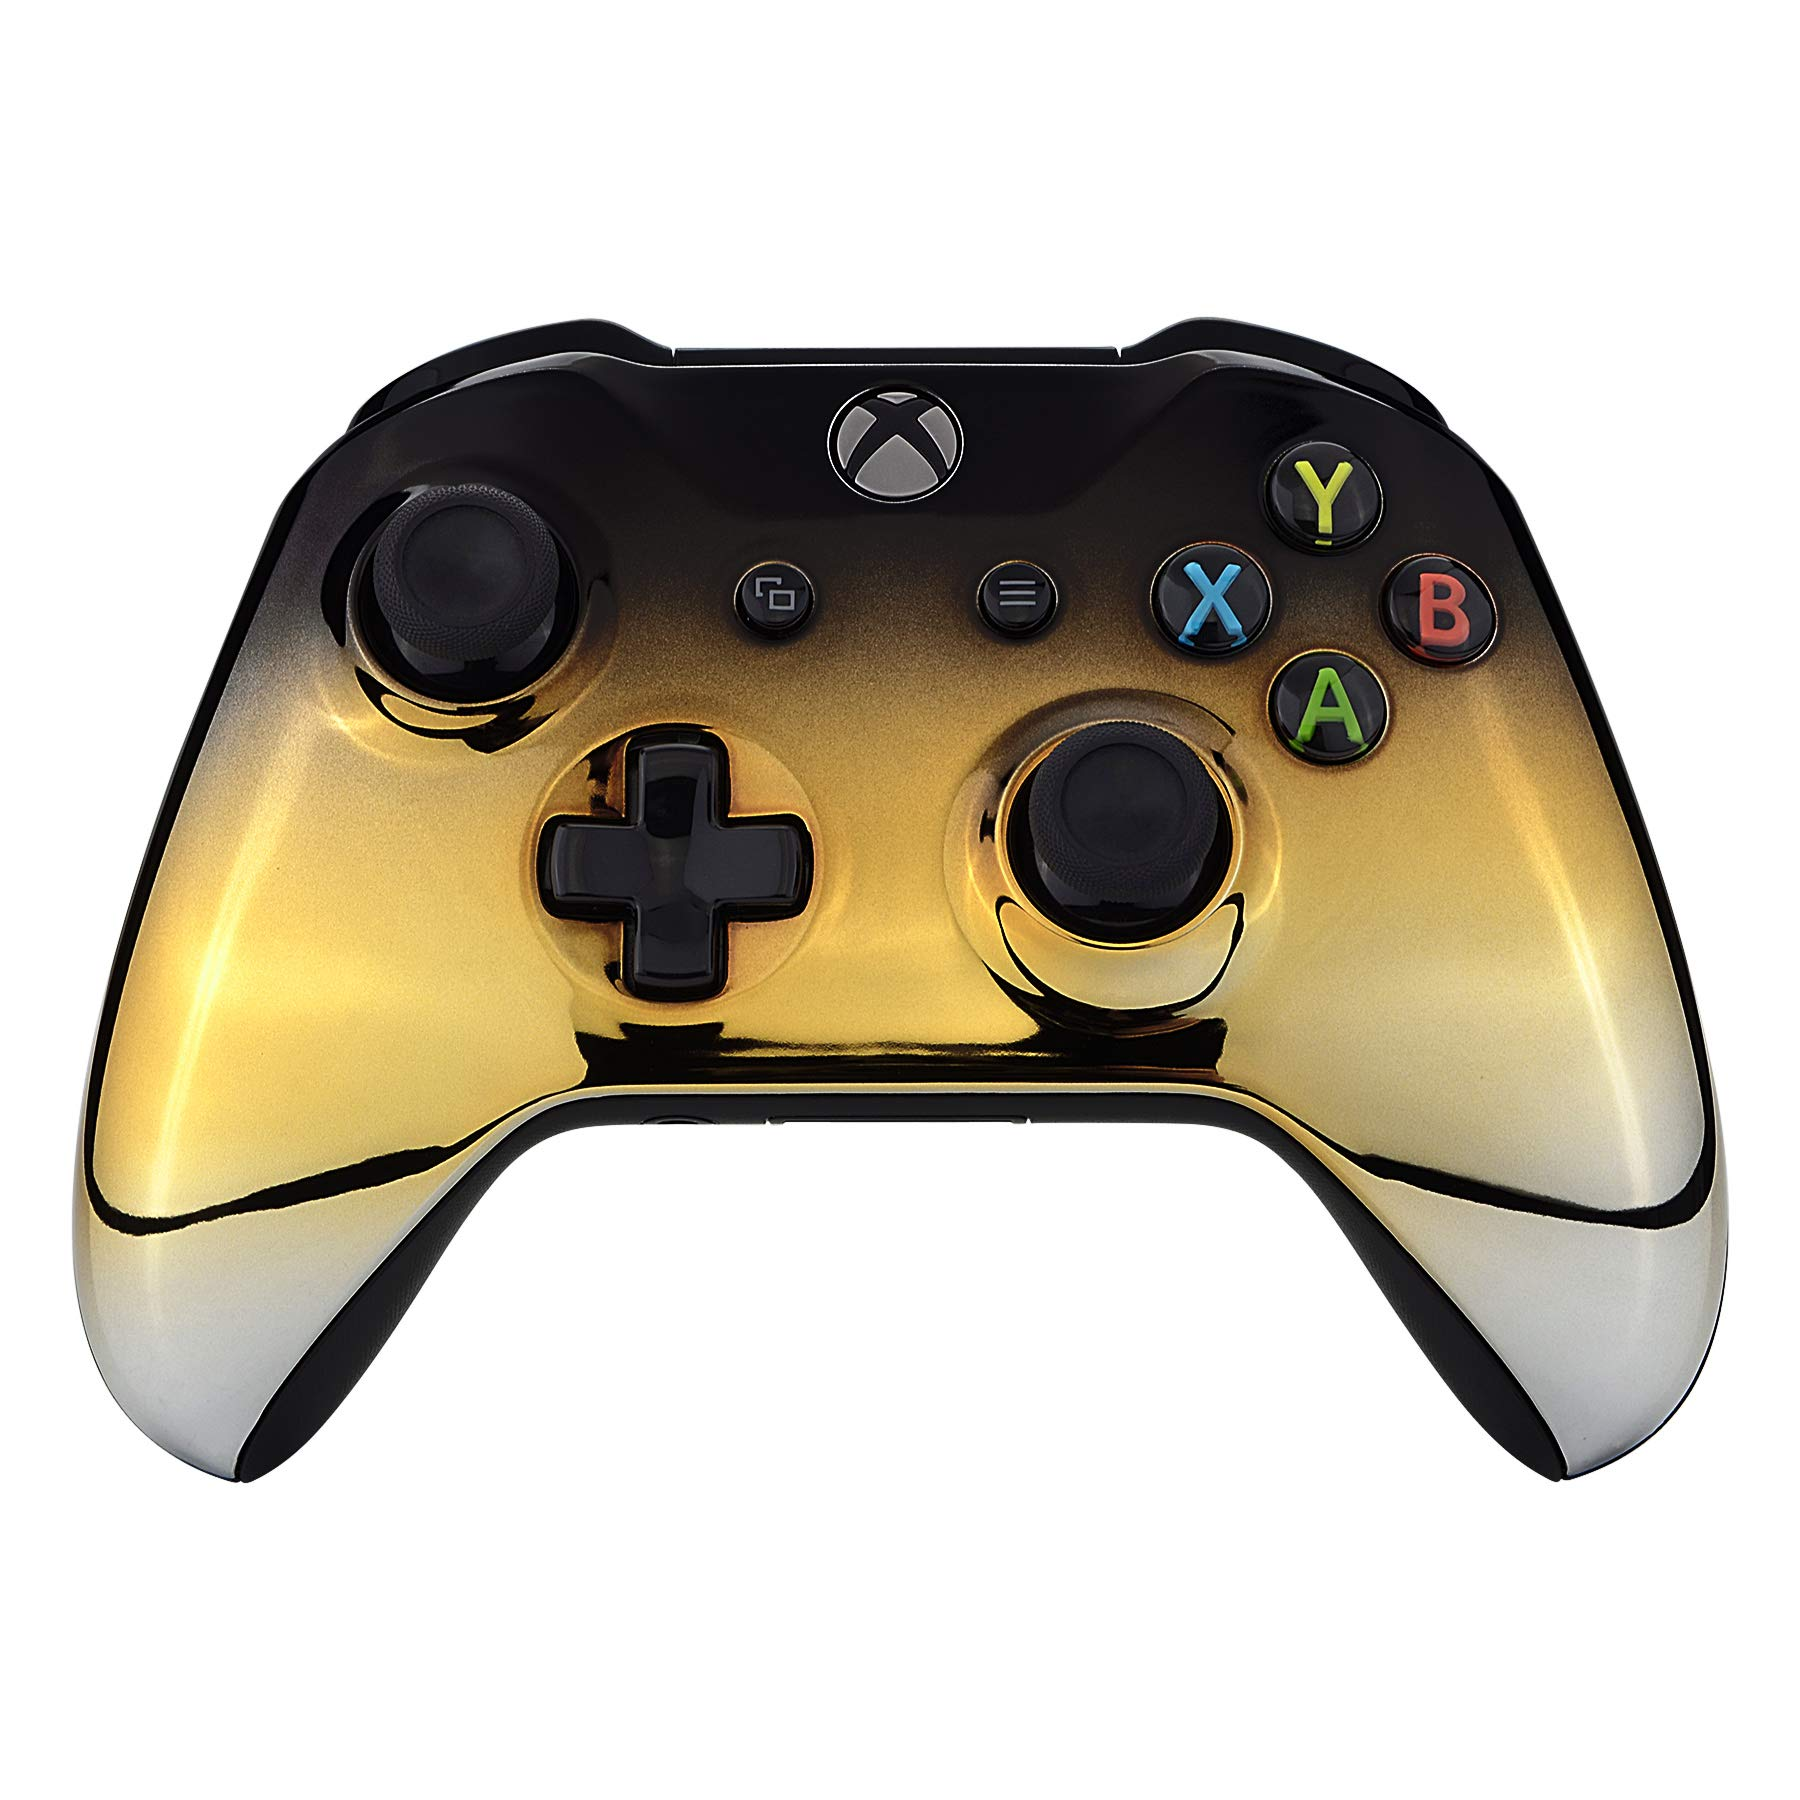 eXtremeRate Tri-Color Gradients Glossy Faceplate Cover, Chrome Black Gold Silver Front Housing Shell Case Replacement Kit for Xbox One S & One X Controller (Model 1708) - Controller NOT Included